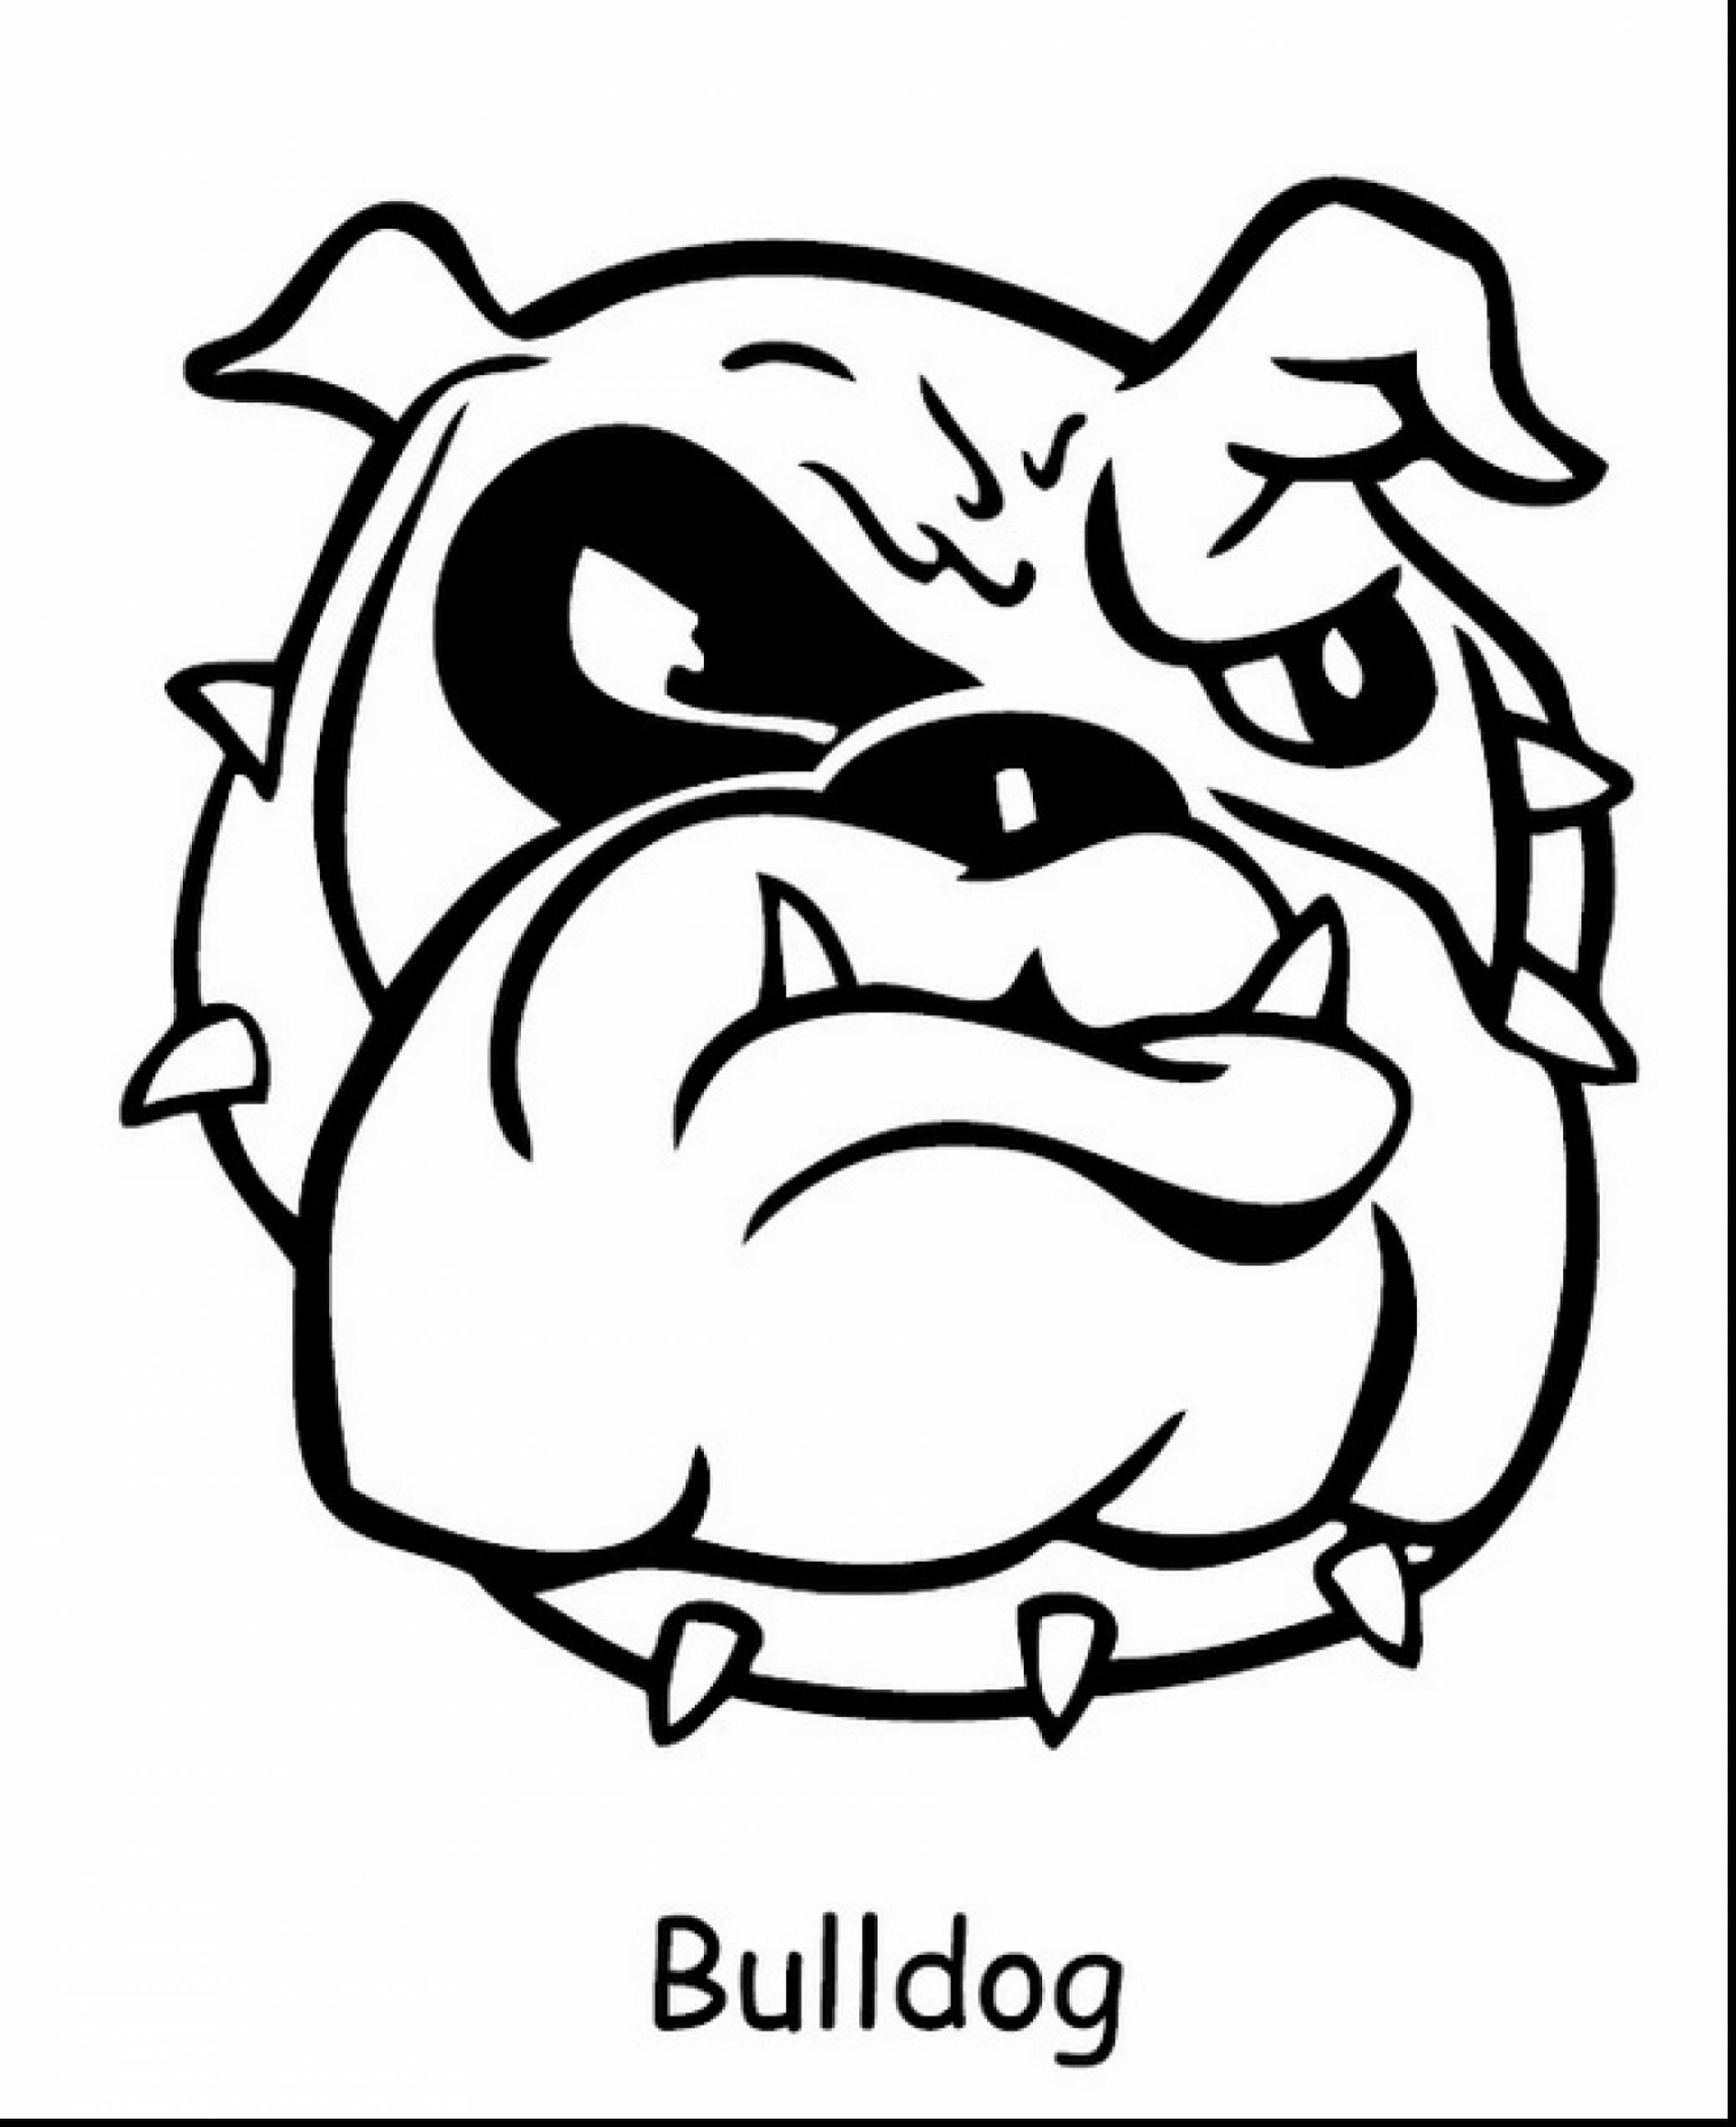 bulldog coloring pages to print - photo#13